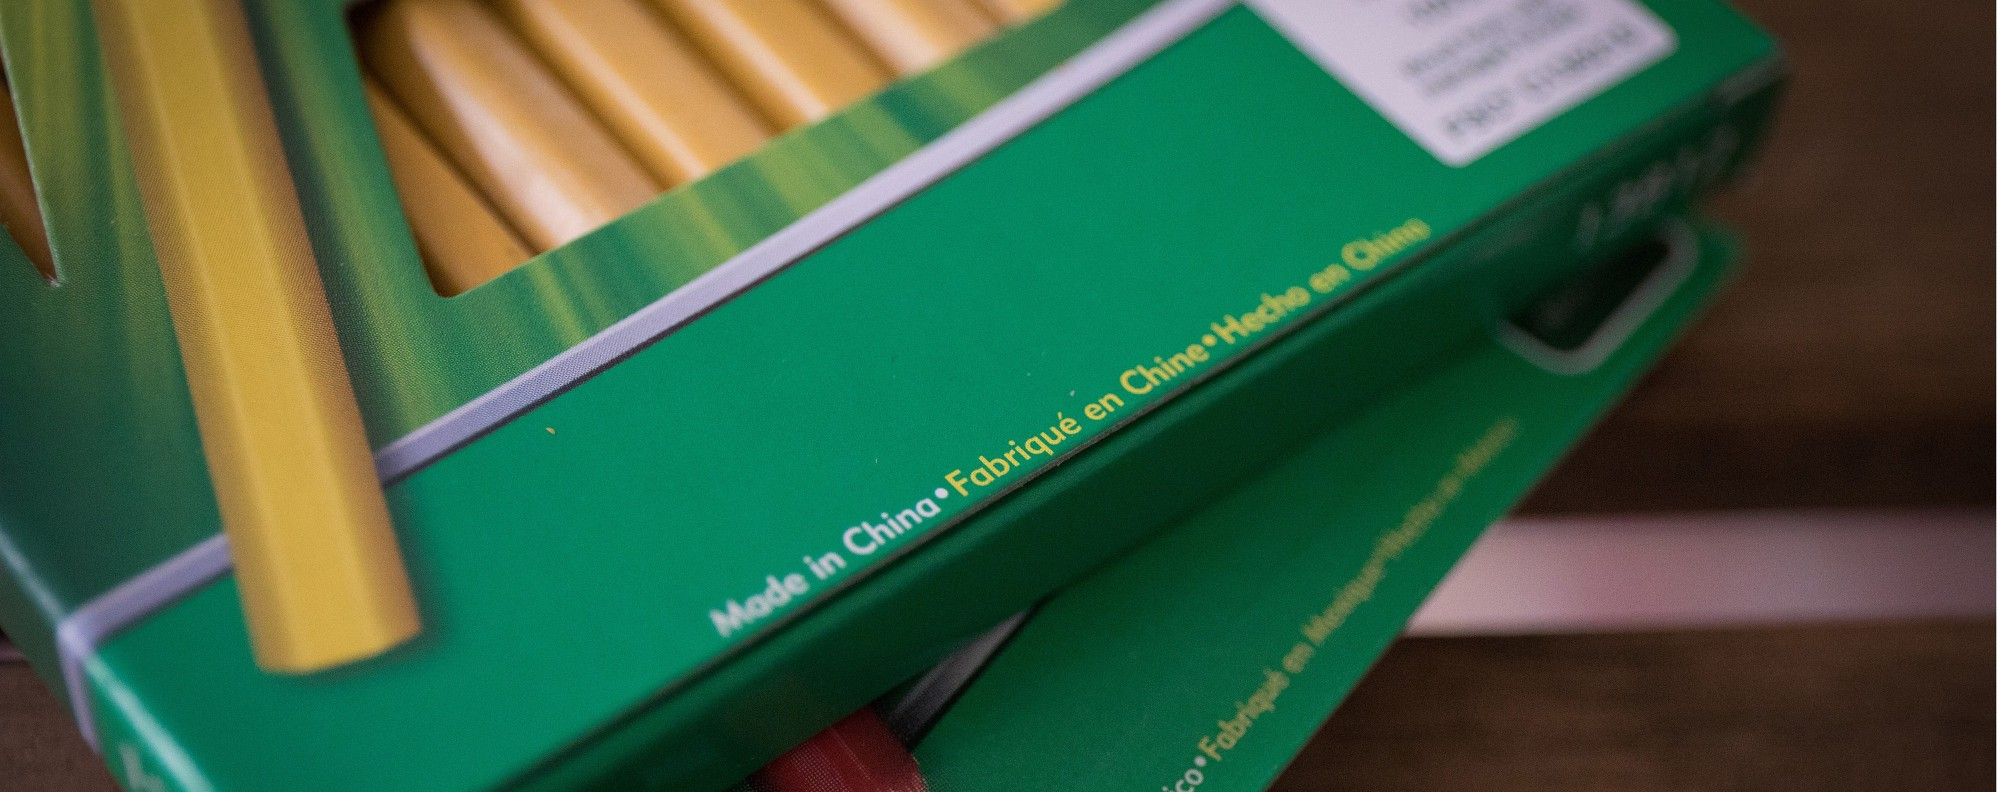 Iconic US pencil producer Dixon Ticonderoga has moved much of its production abroad. Picture: Charlotte Kesl for The Washington Post